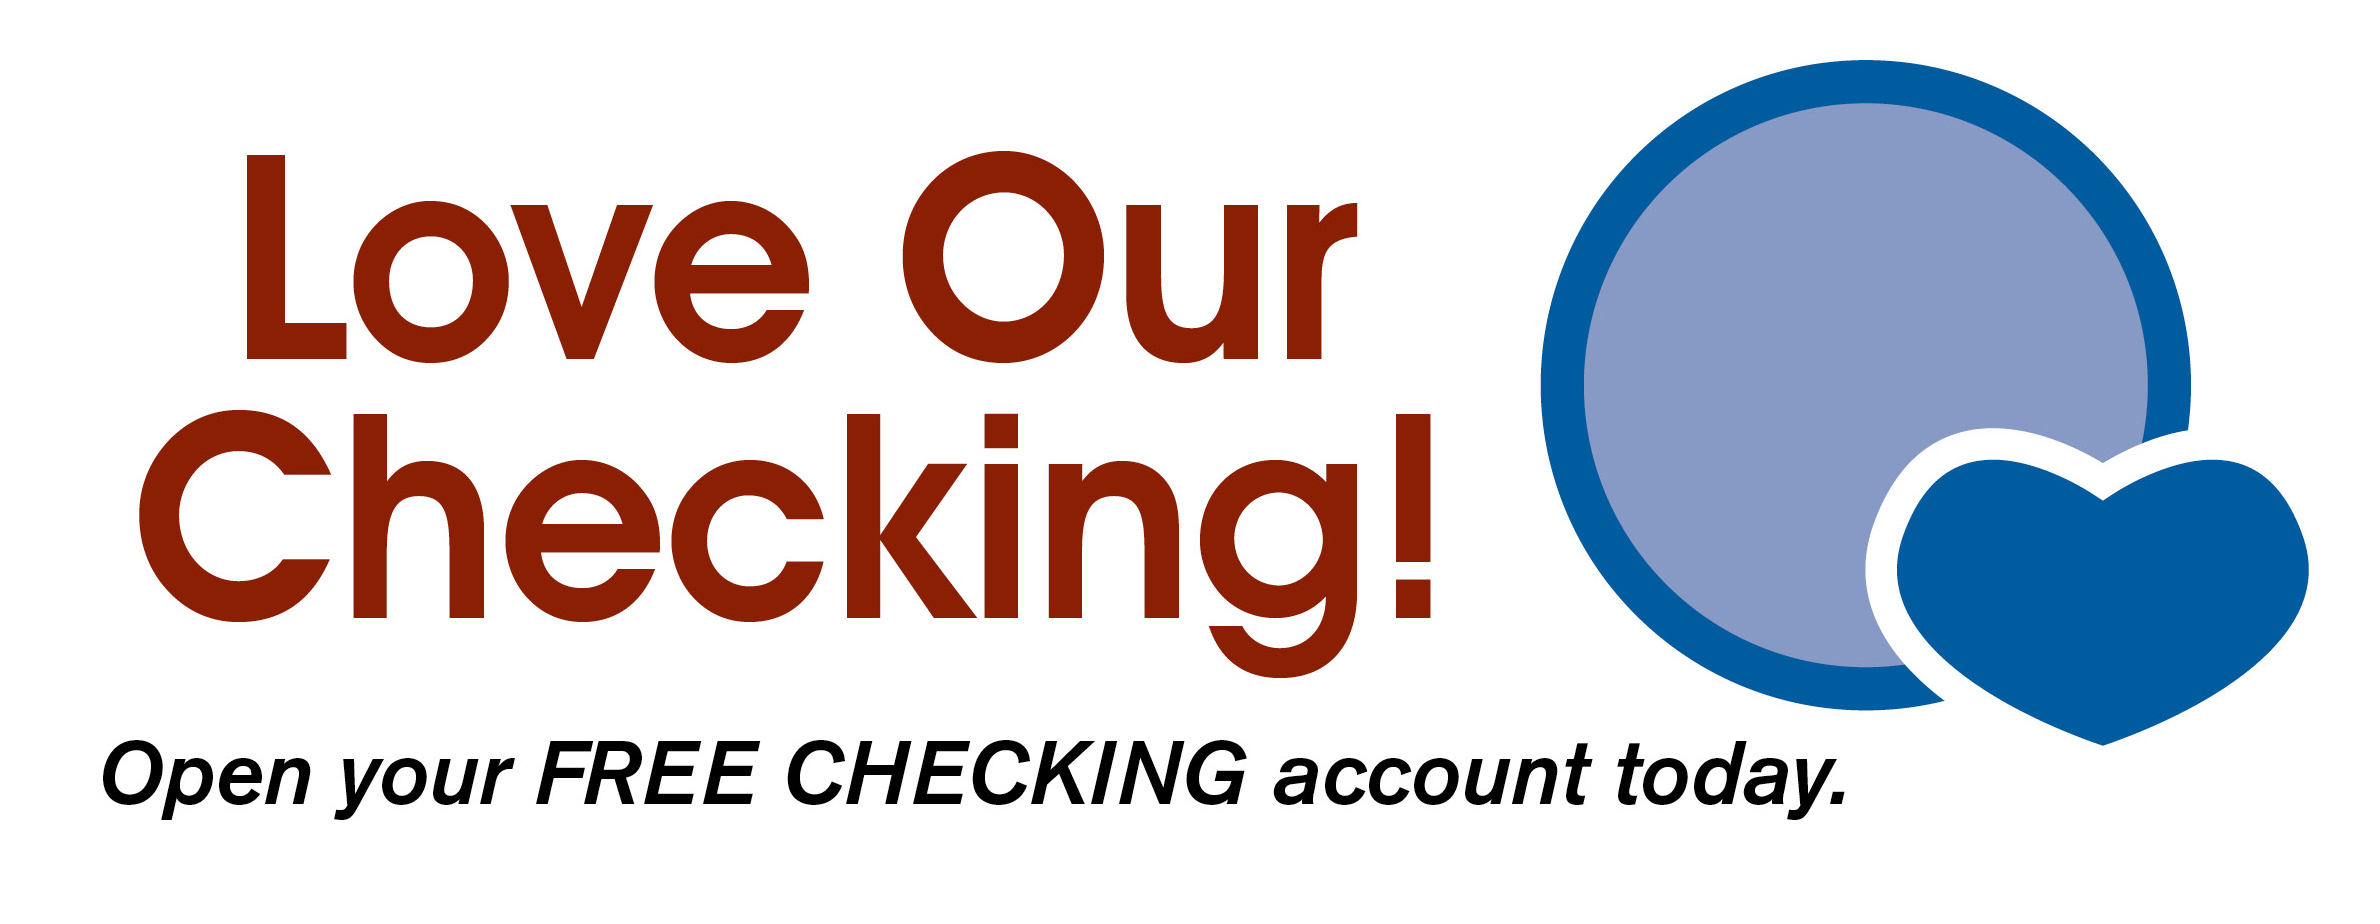 Checking | First United Credit Union